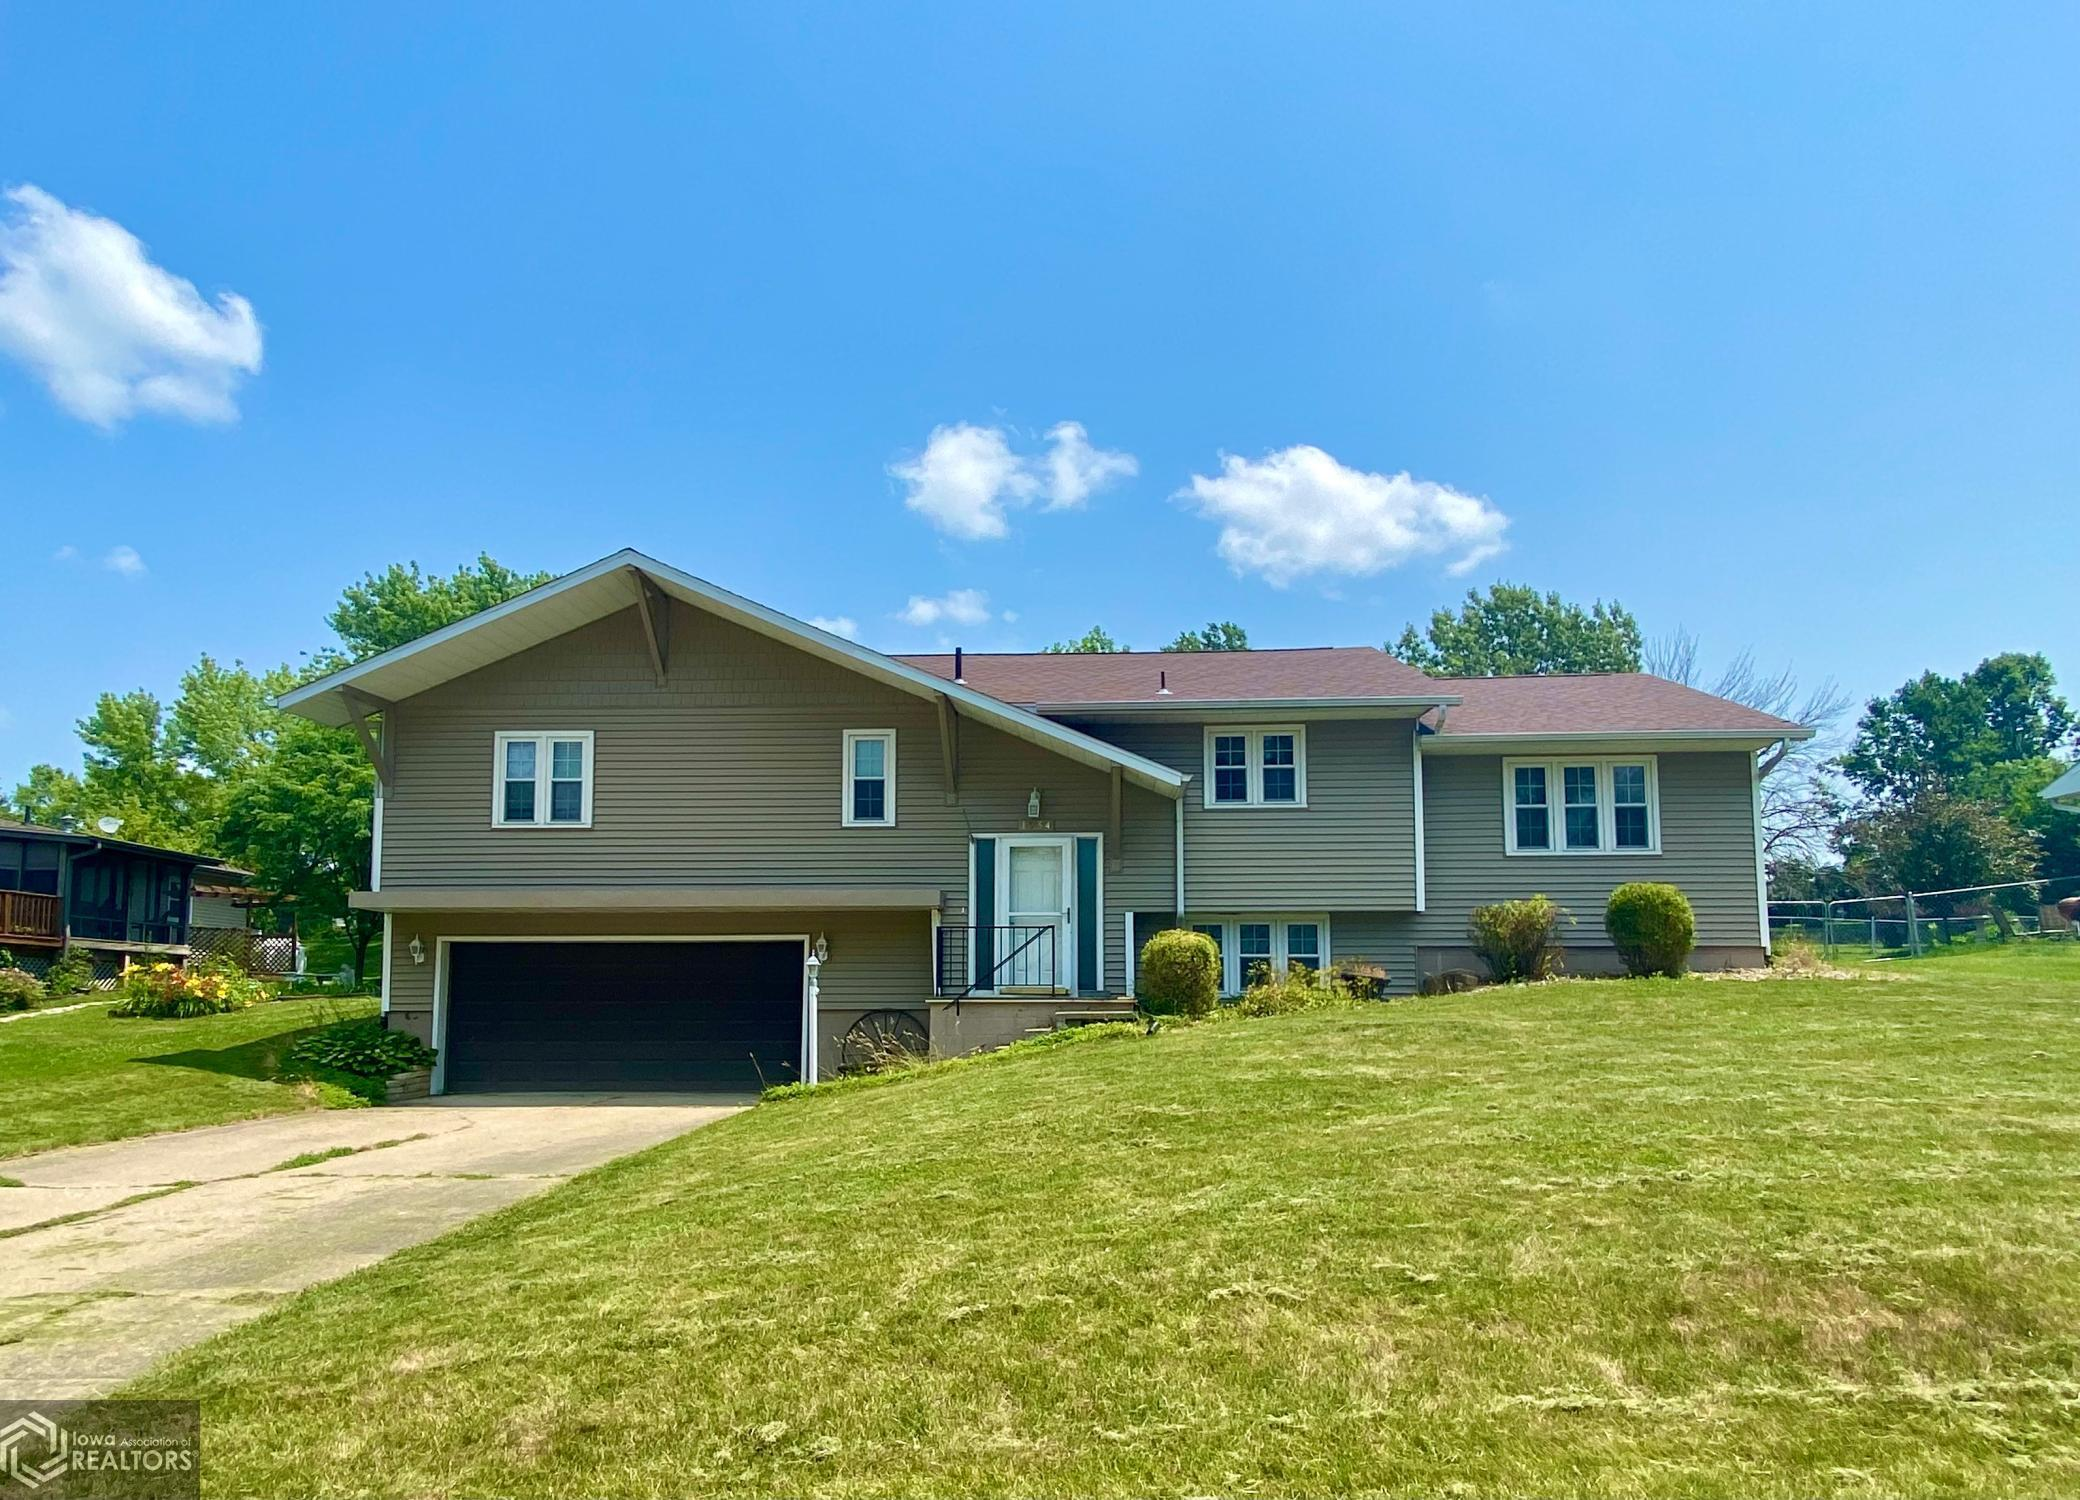 1934 Spencer, Grinnell, Iowa 50112-1034, 3 Bedrooms Bedrooms, ,1 BathroomBathrooms,Single Family,For Sale,Spencer,6019919